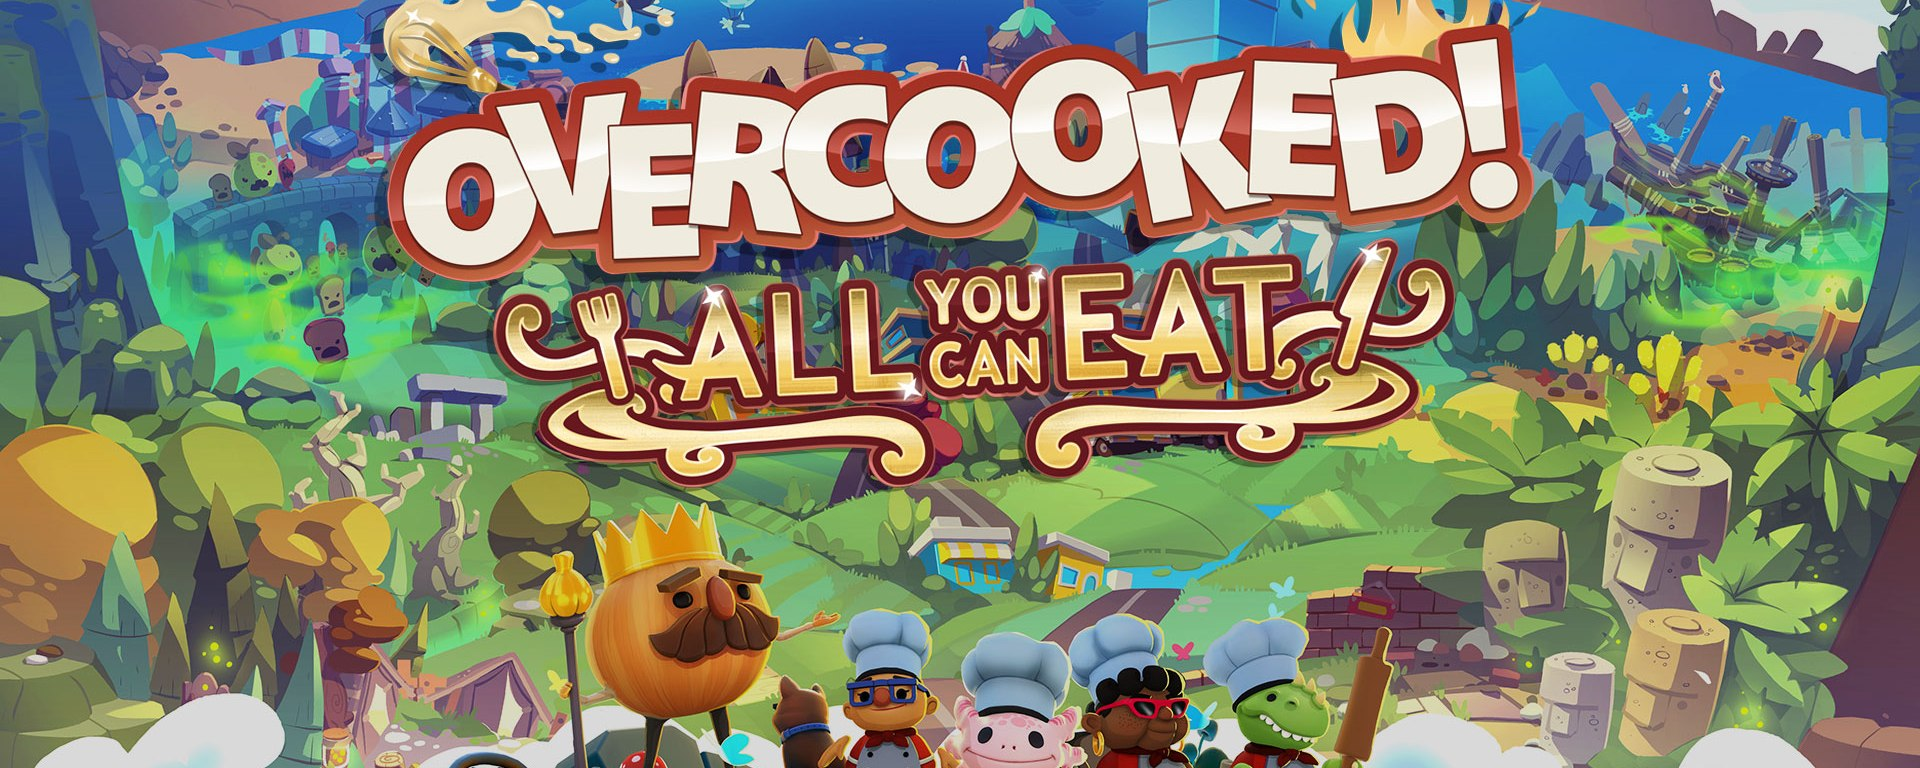 overcooked-all-you-can-eat-remasters-the-games-for-ps5-xbox-series-x